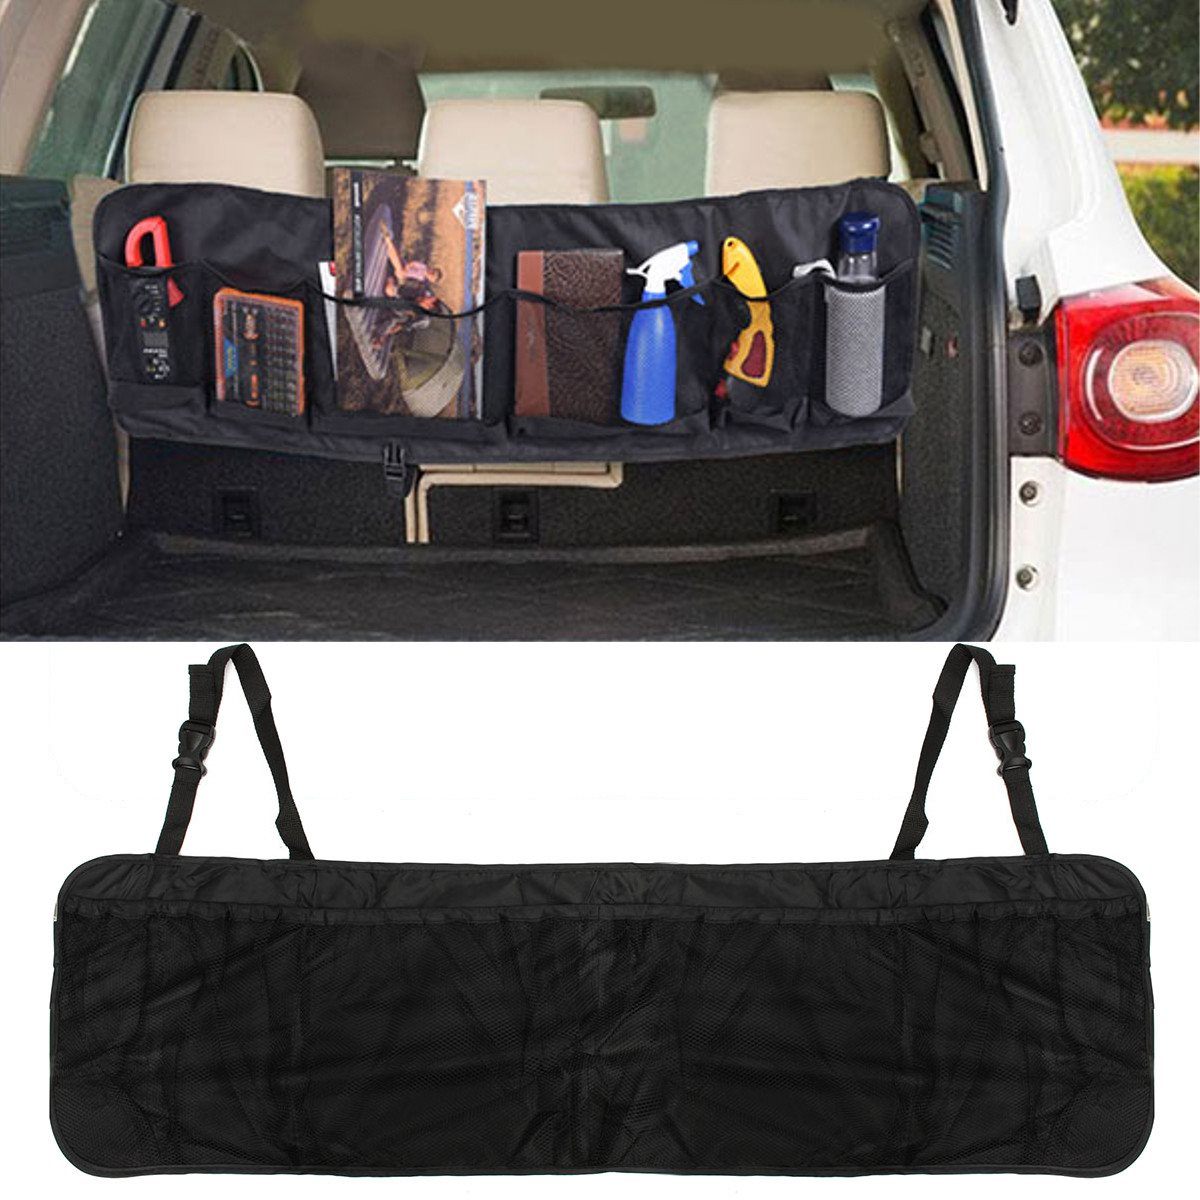 110 x 34cm Car Seat Back Tidy Organiser Multi-Pocket Auto Travel Hanging Storage Bag Holder Auto Accessories auto car seat back organizer holder bag